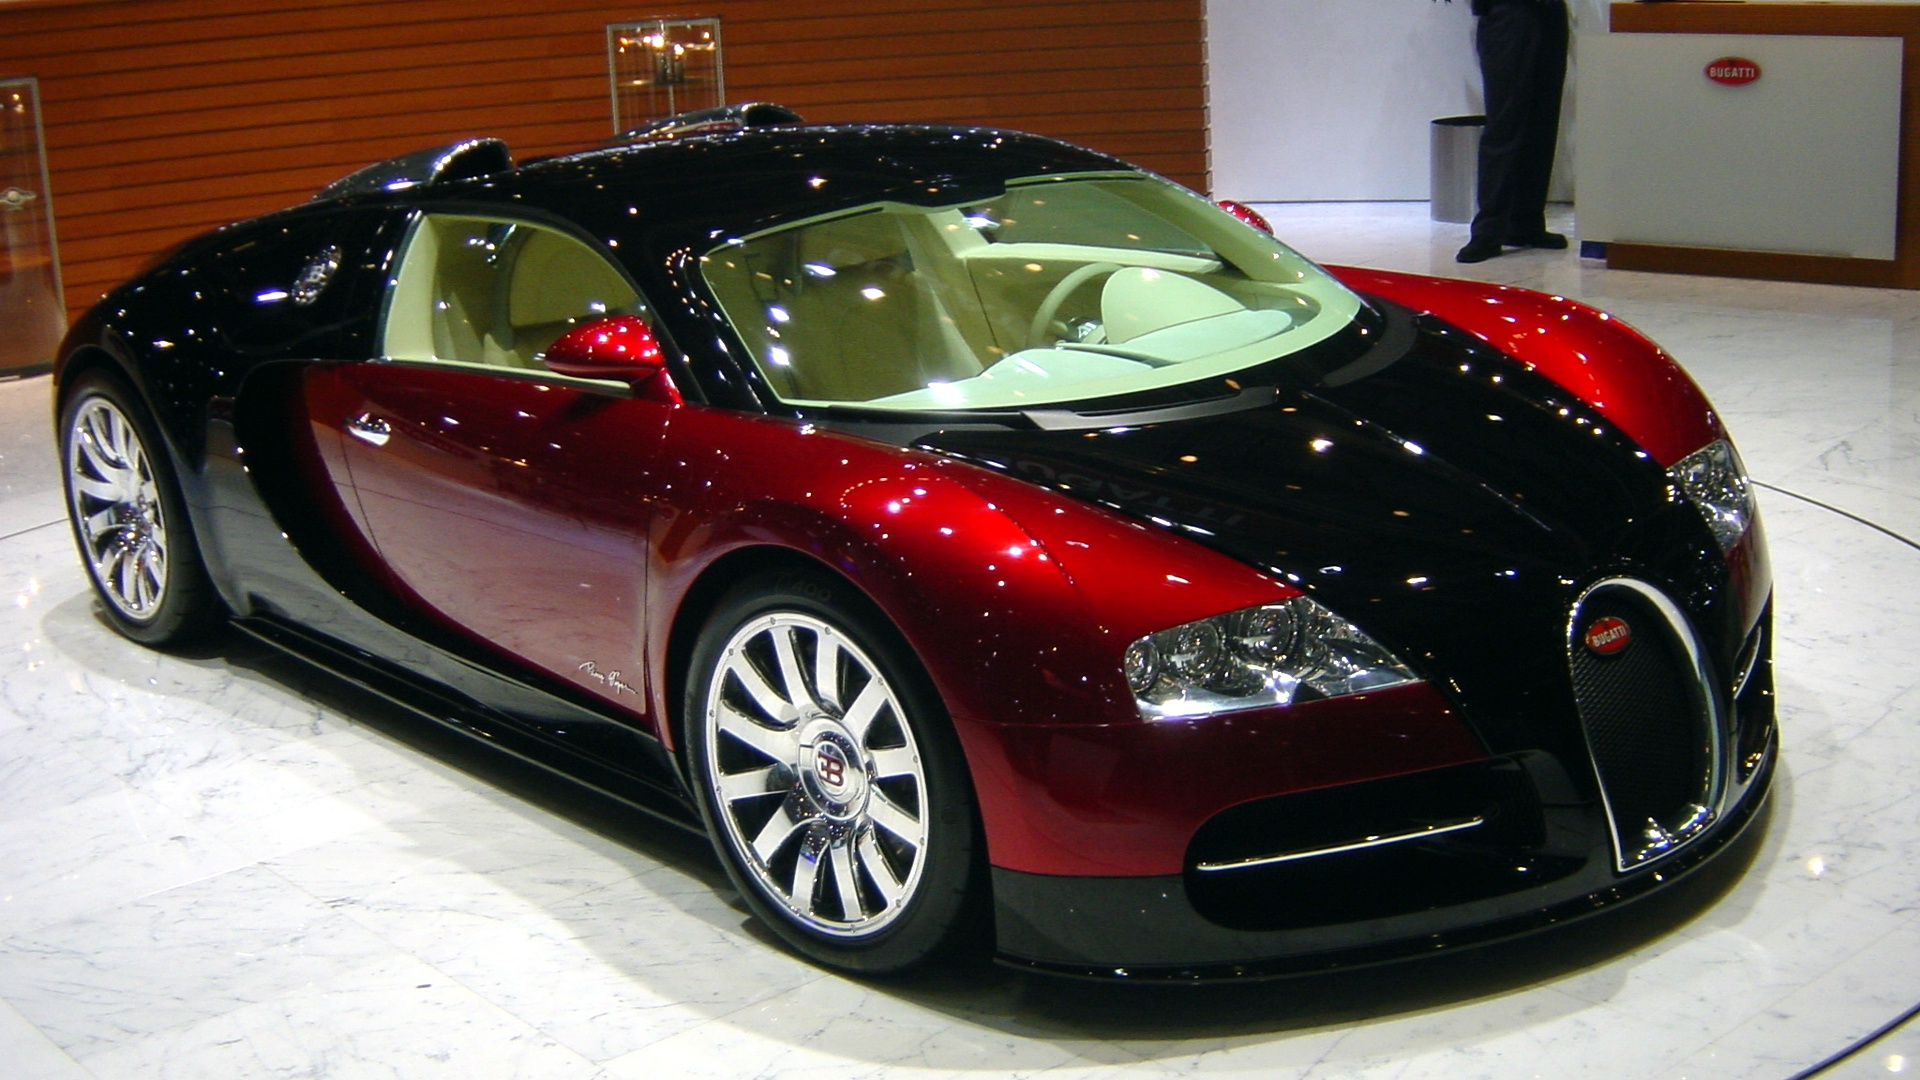 Bugatti Veyron Salon HD Wallpapers Backgrounds For Your Desktop